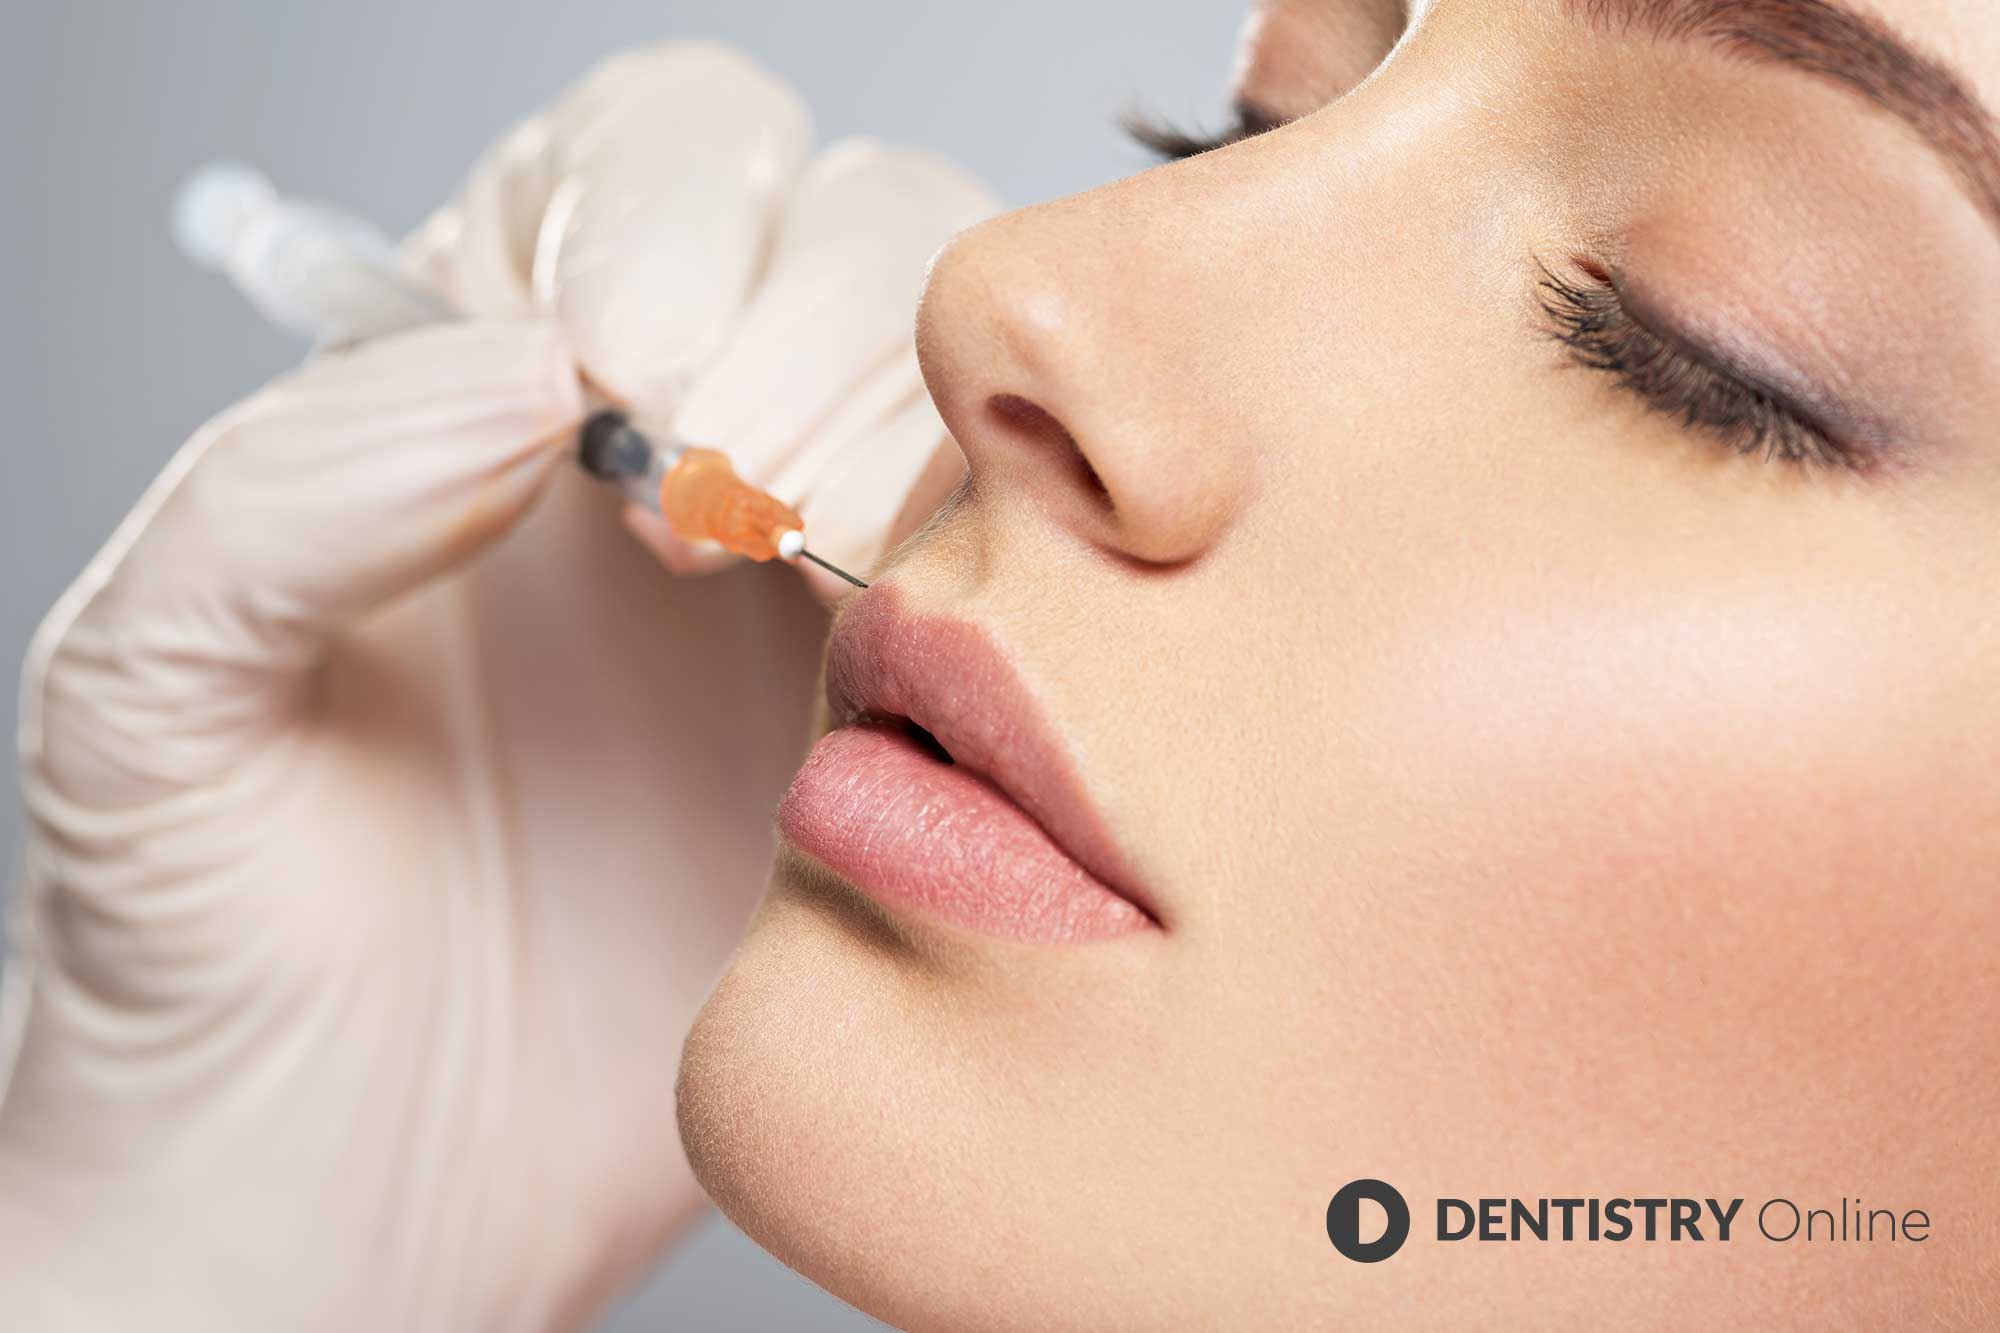 Members of parliament are calling for a ban on Botox and lip fillers for those under the age of 18